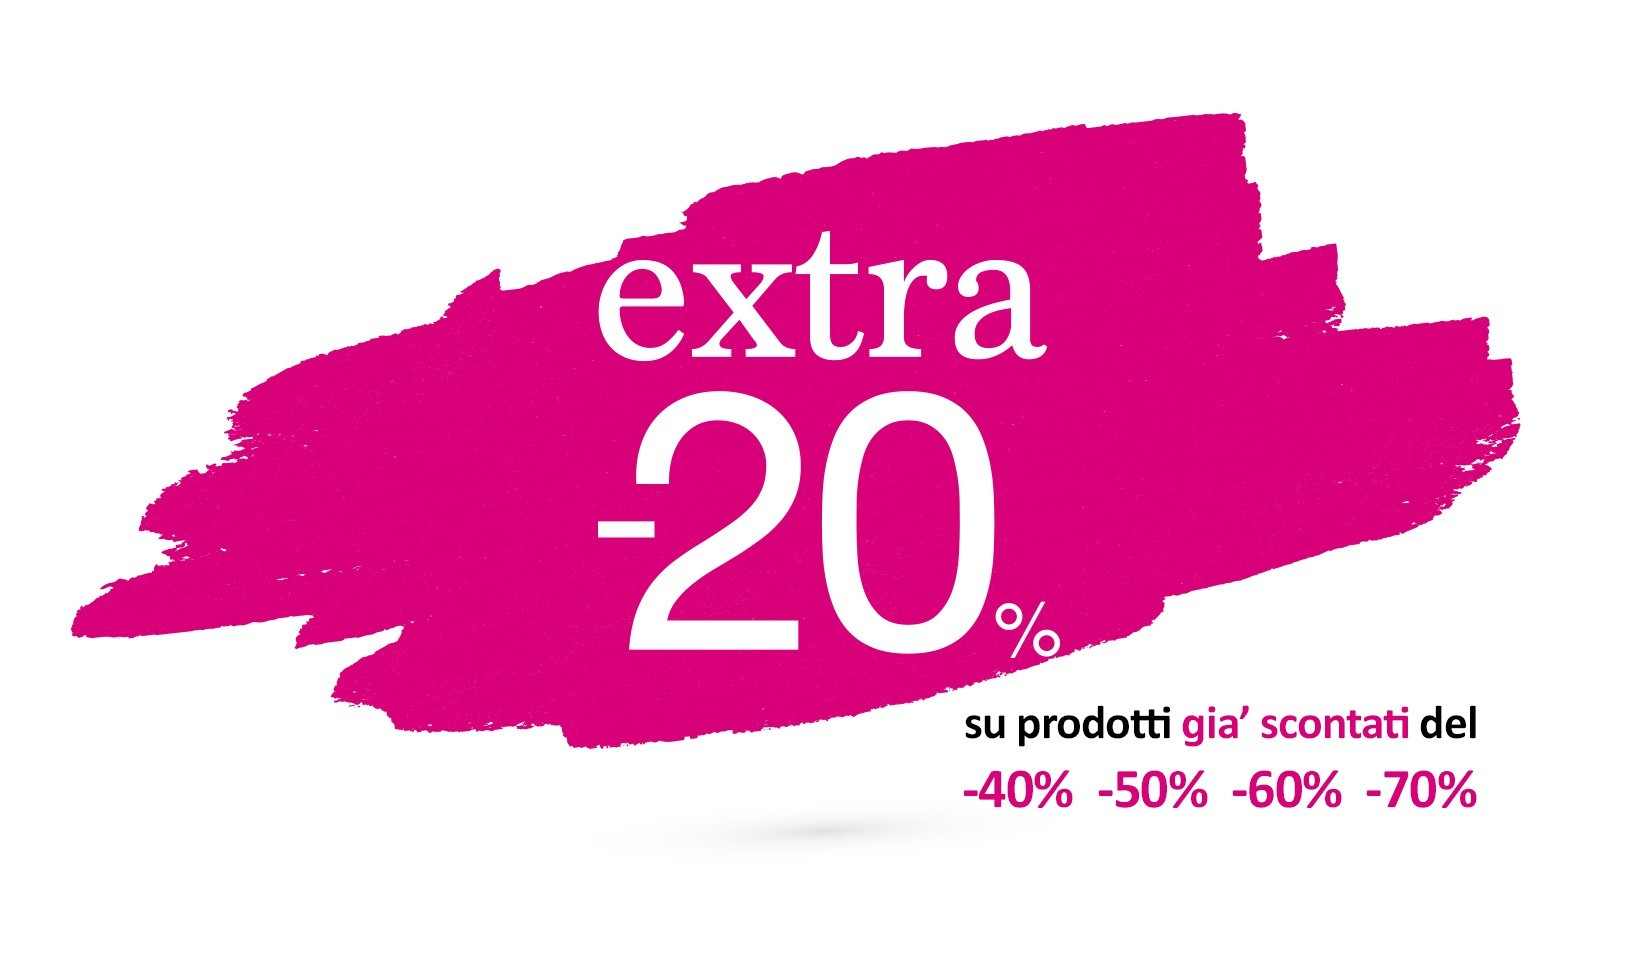 Extra -20% OFF